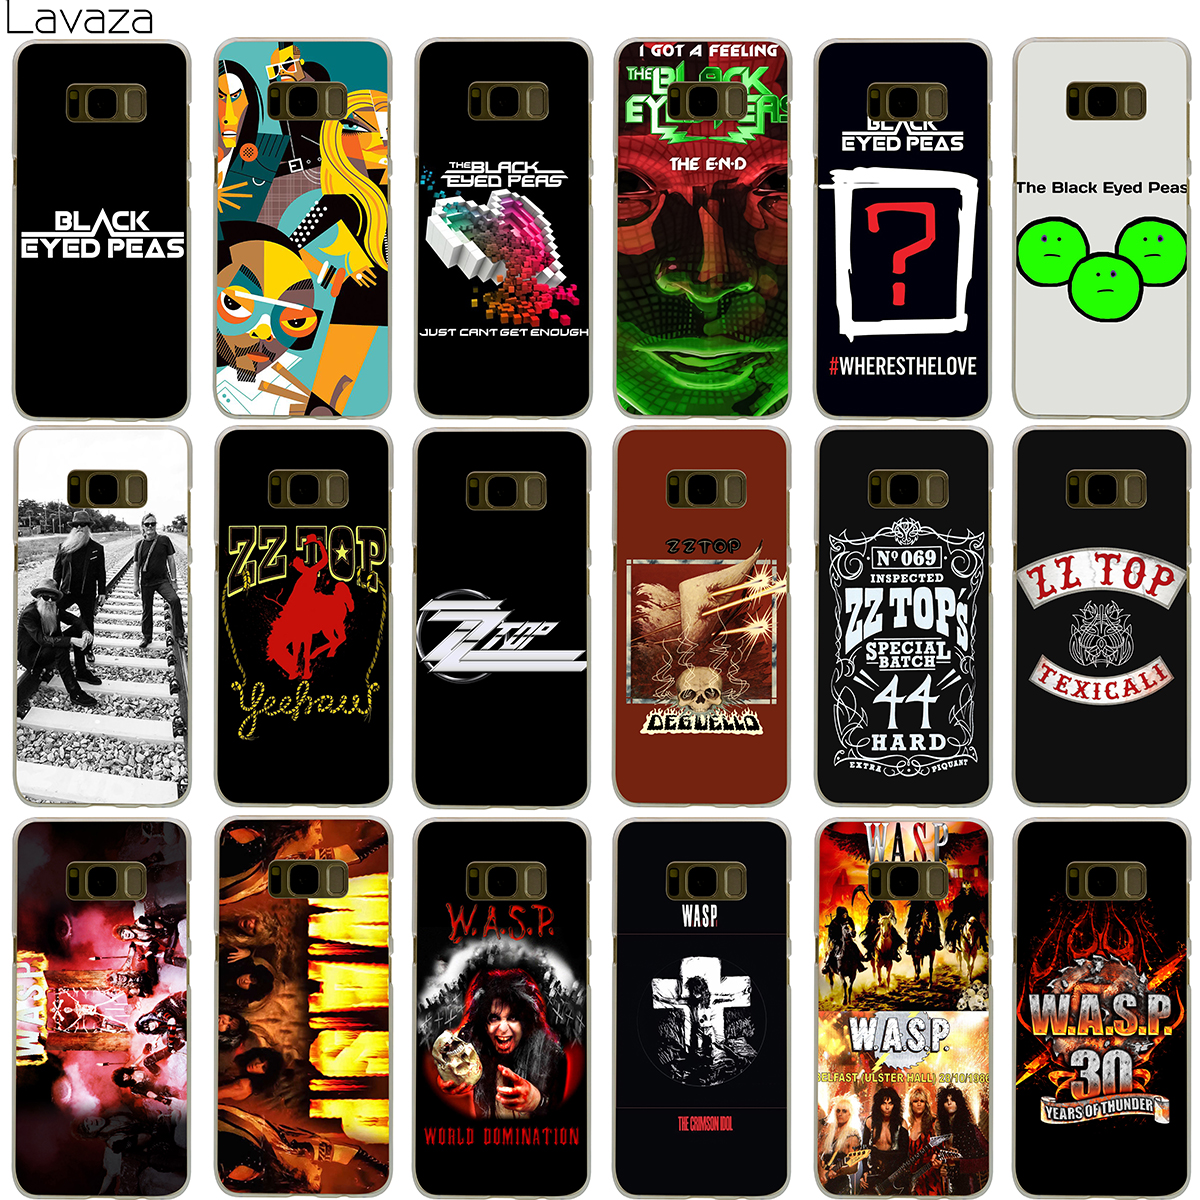 Lavaza The Black Eyed Peas ZZ Top W.A.S.P Band Case for Samsung Galaxy S5 S6 S7 Edge S9 S8 Plus